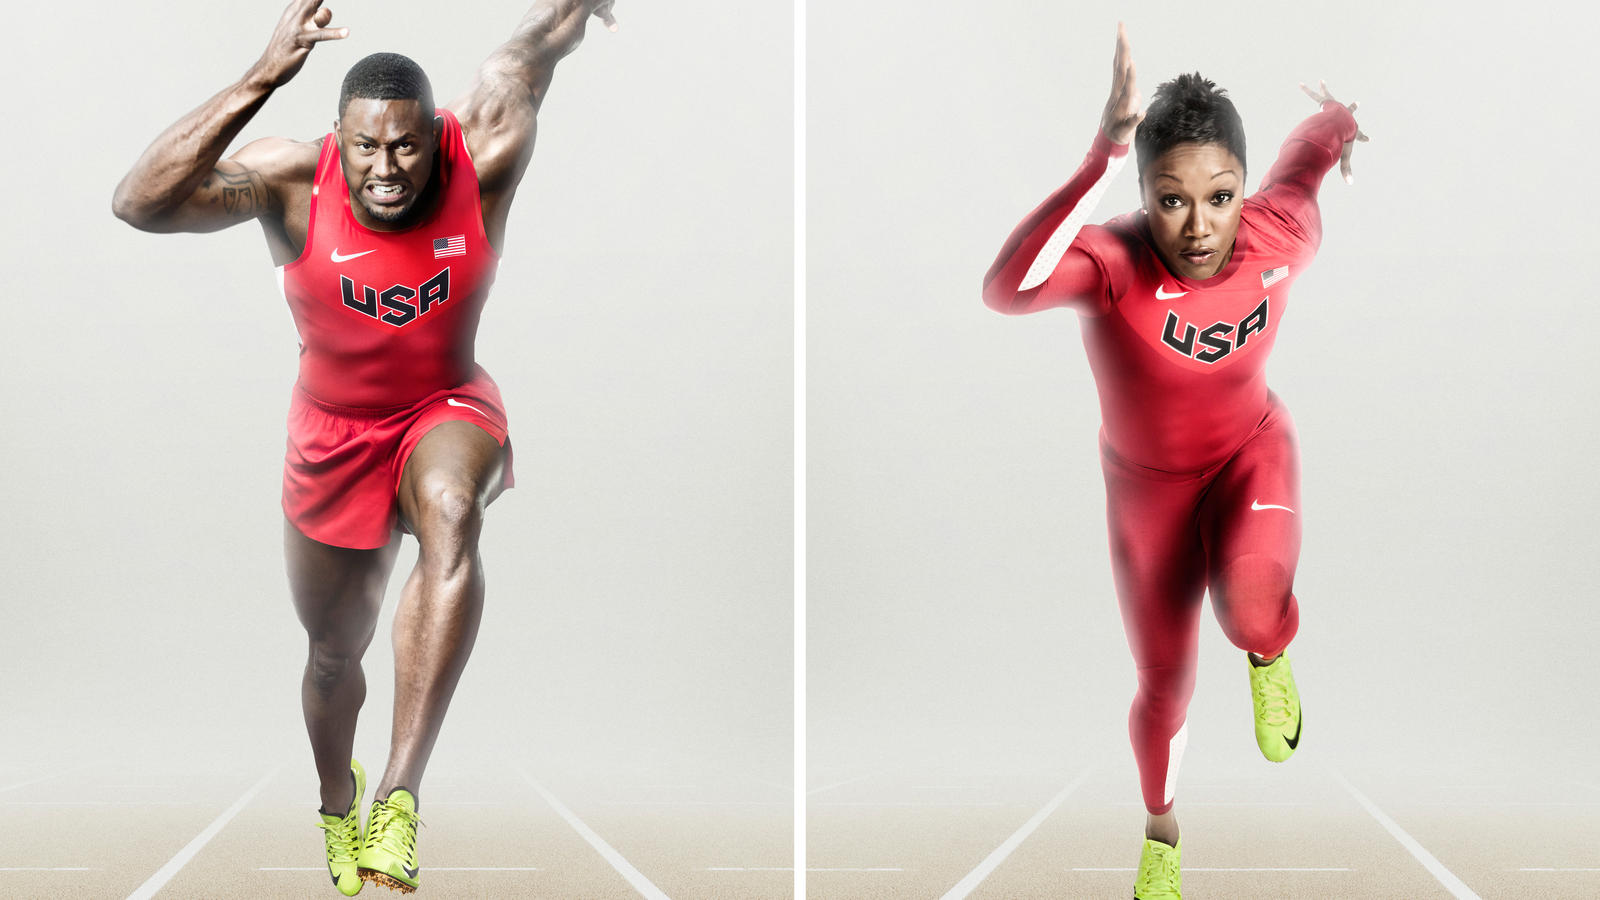 aparato revelación Regeneración  Performance, aesthetics and sustainability merge for USA Track and Field  uniforms - Nike News